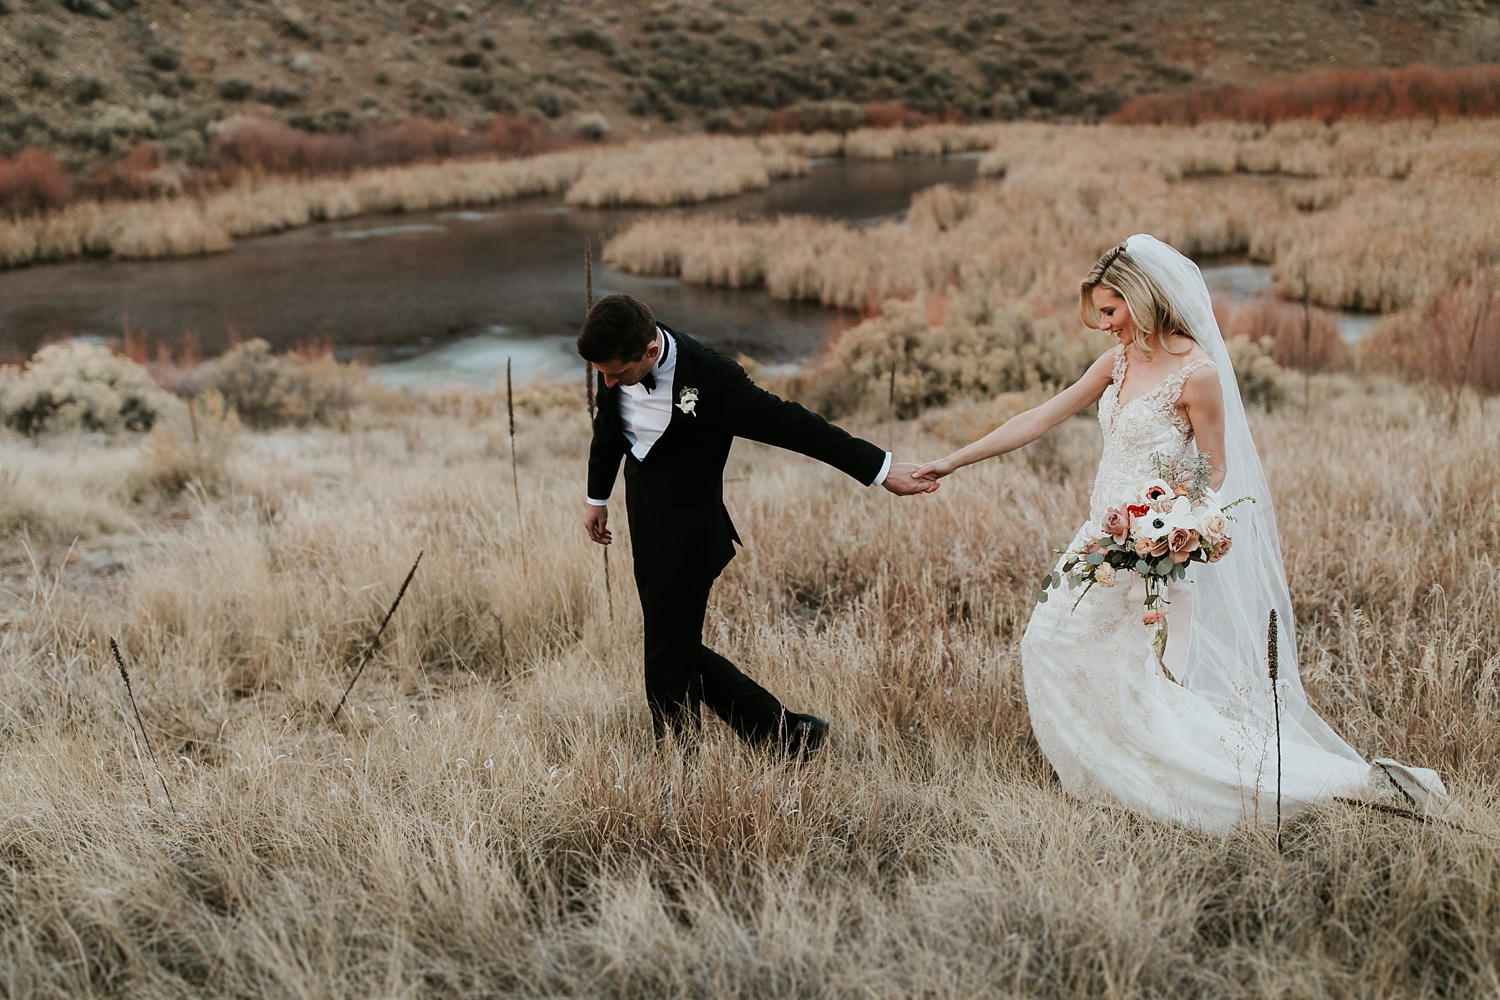 Alicia+lucia+photography+-+albuquerque+wedding+photographer+-+santa+fe+wedding+photography+-+new+mexico+wedding+photographer+-+la+fonda+wedding+-+la+fonda+winter+wedding_0101.jpg